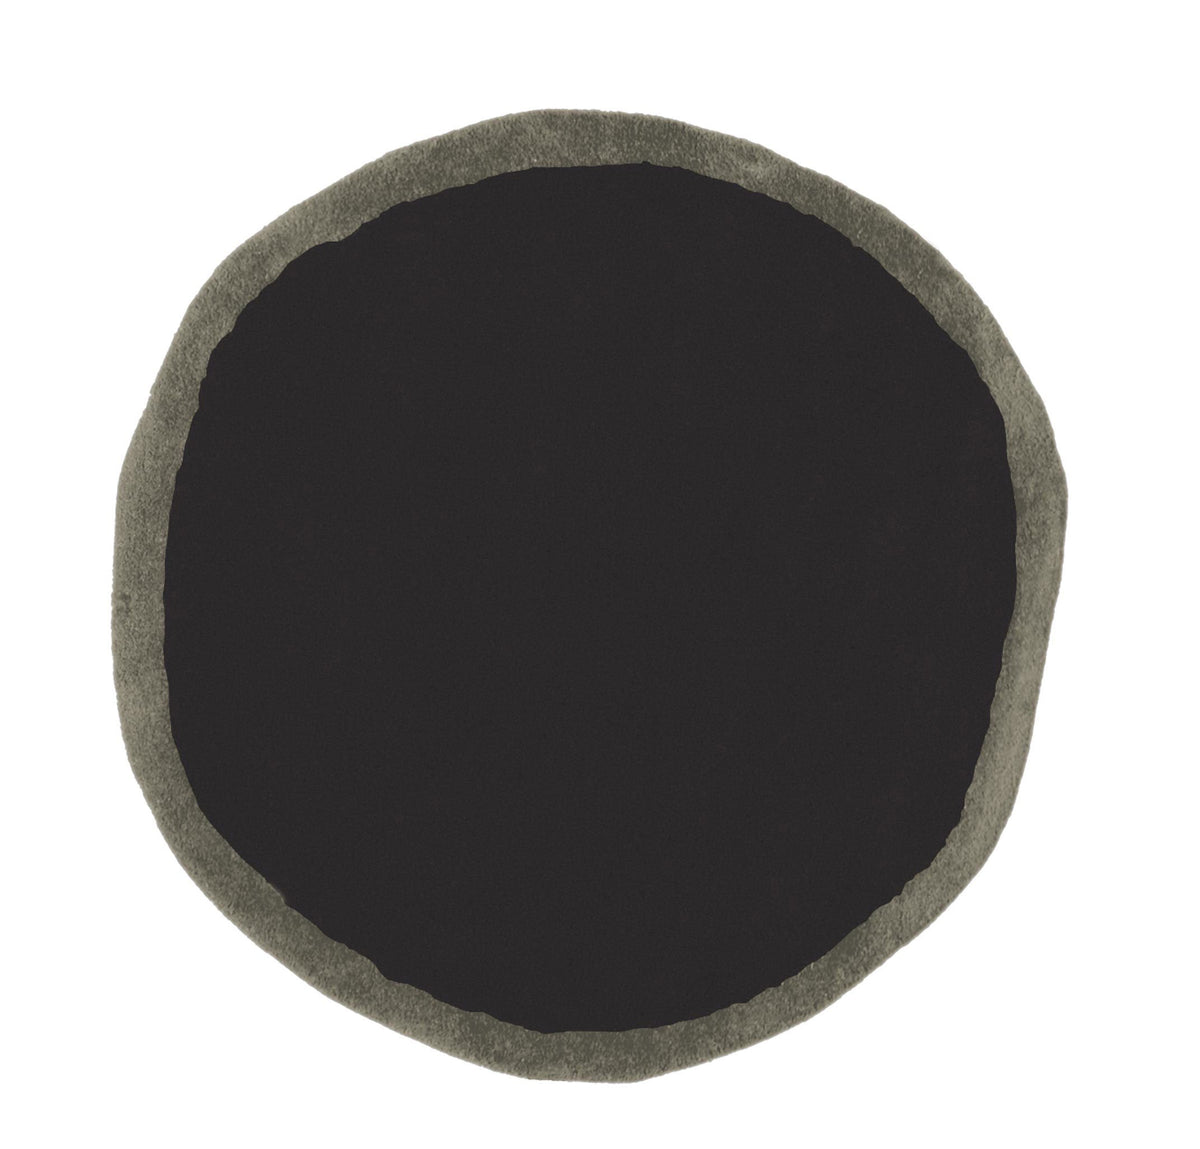 Aros Round 2 Rug-Nanimarquina-Contract Furniture Store